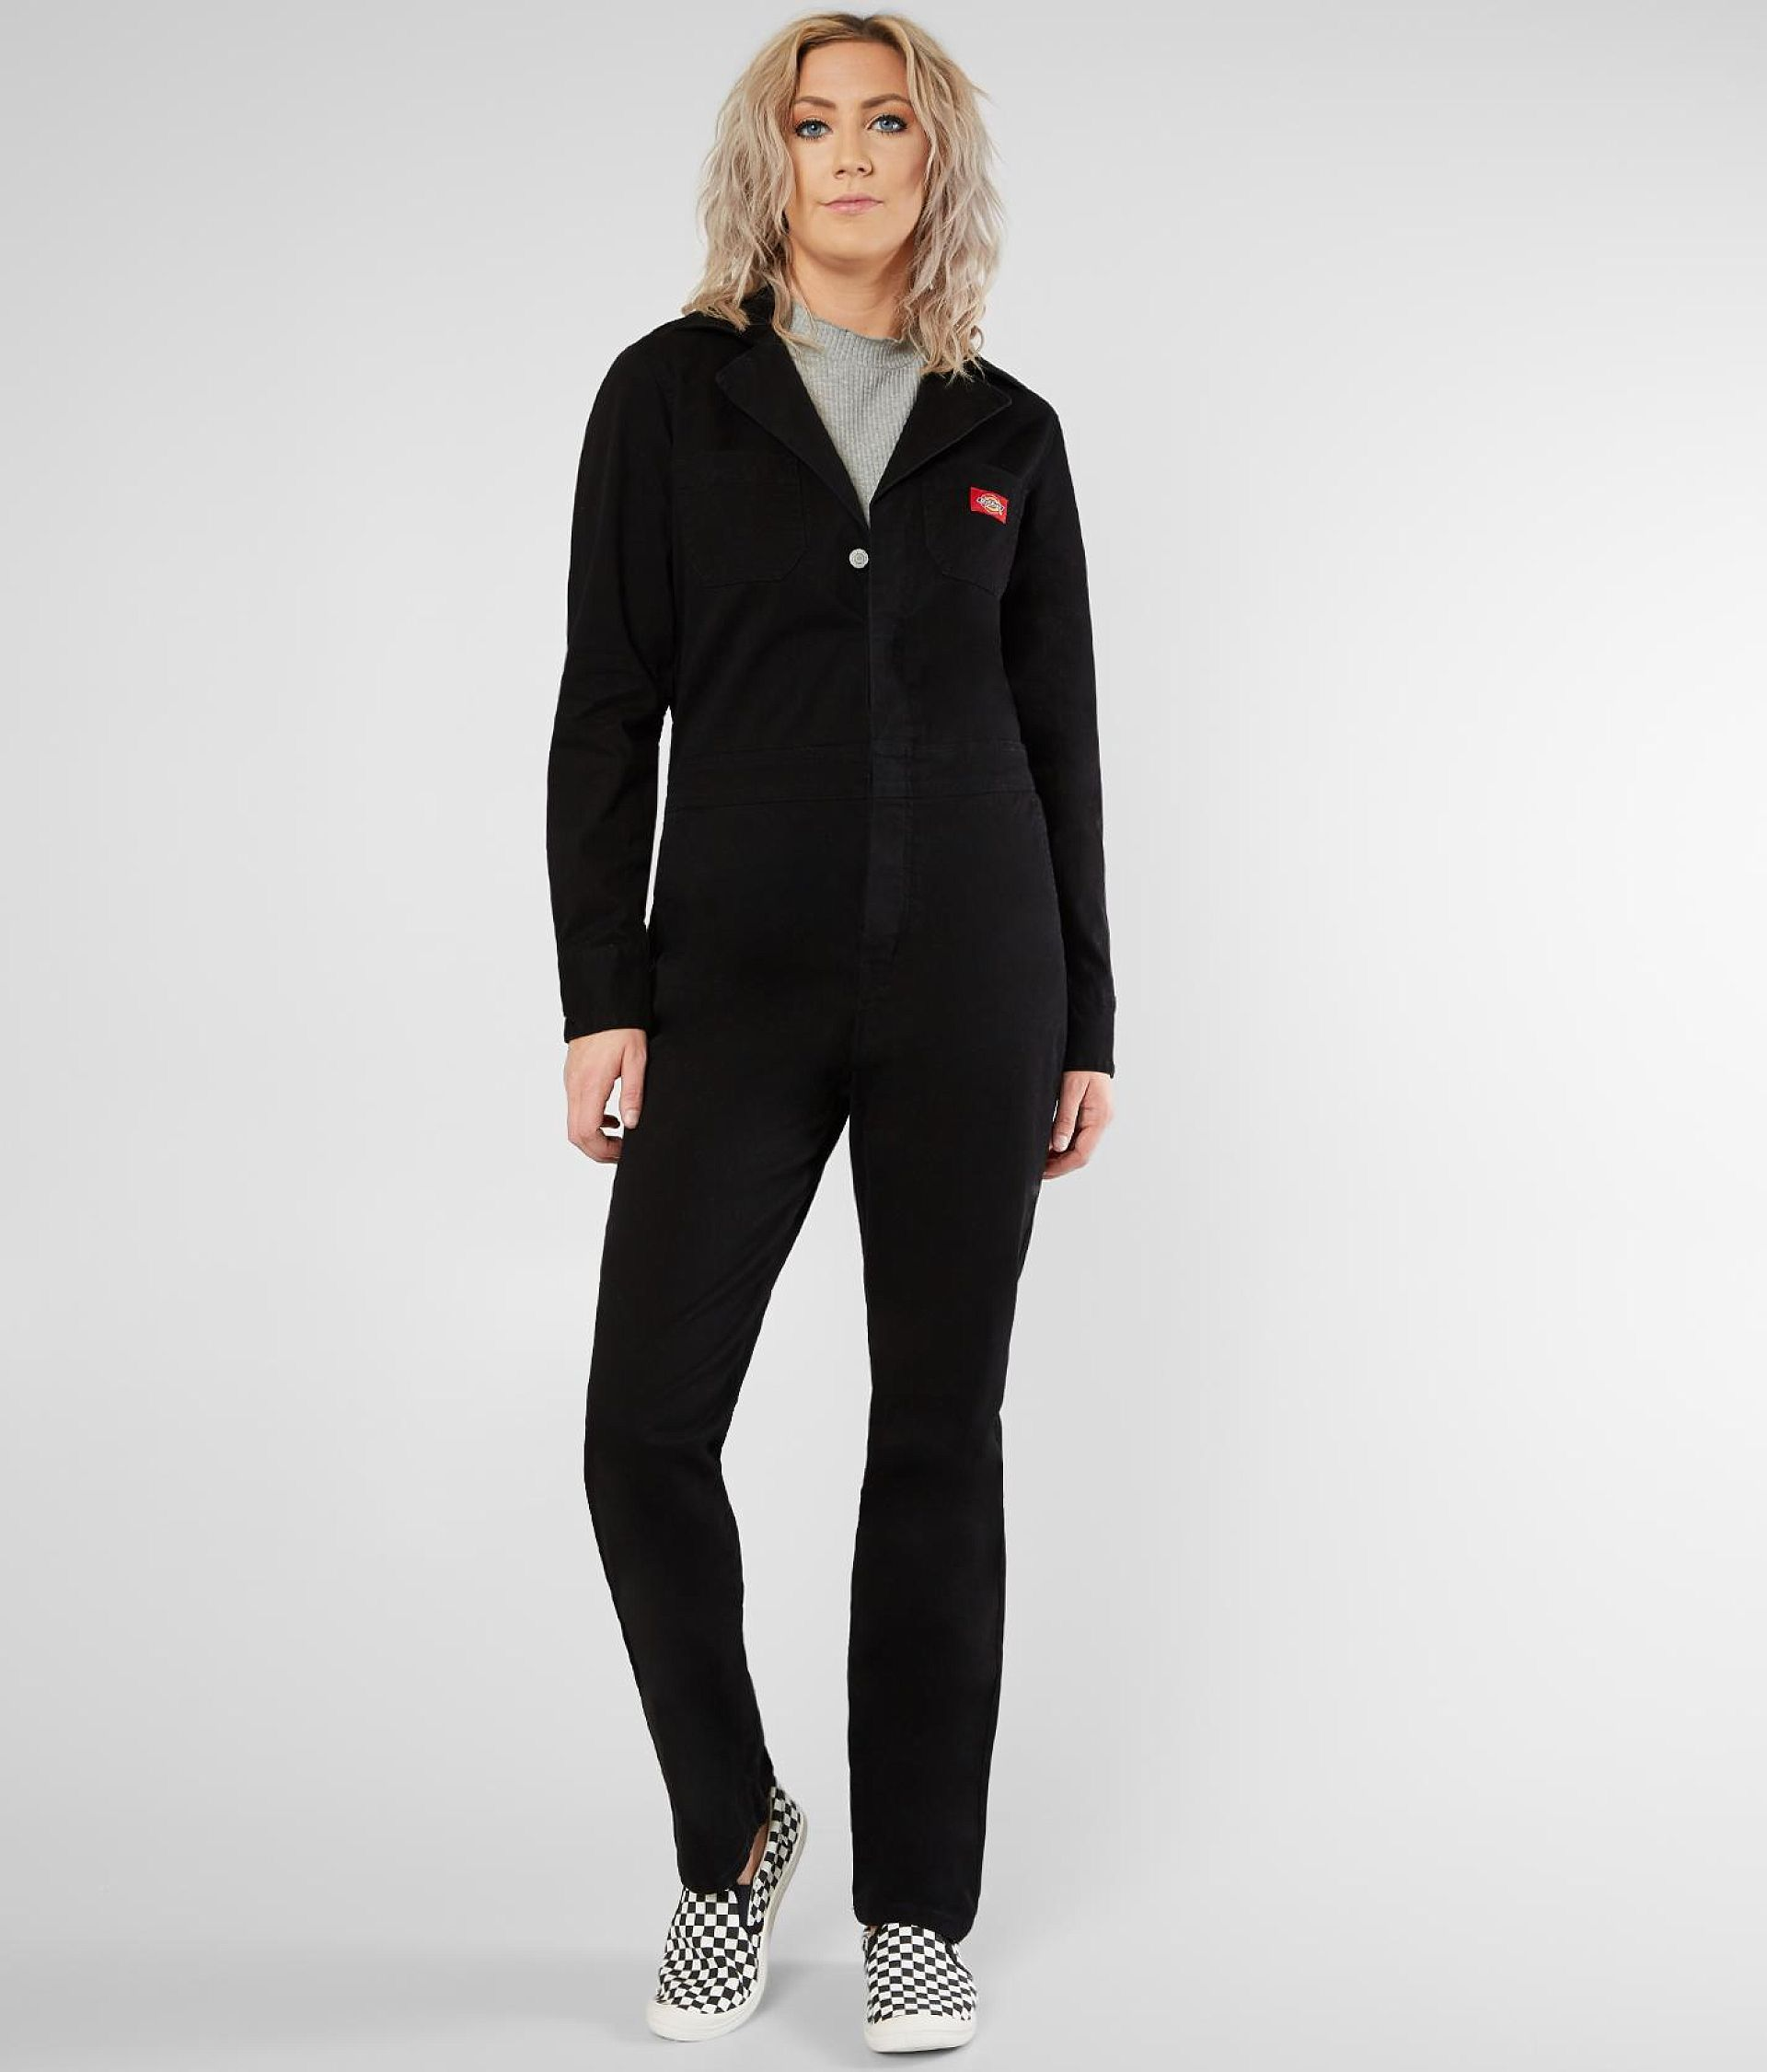 dickies full length coveralls women s rompers jumpsuits on dickies coveralls id=52024